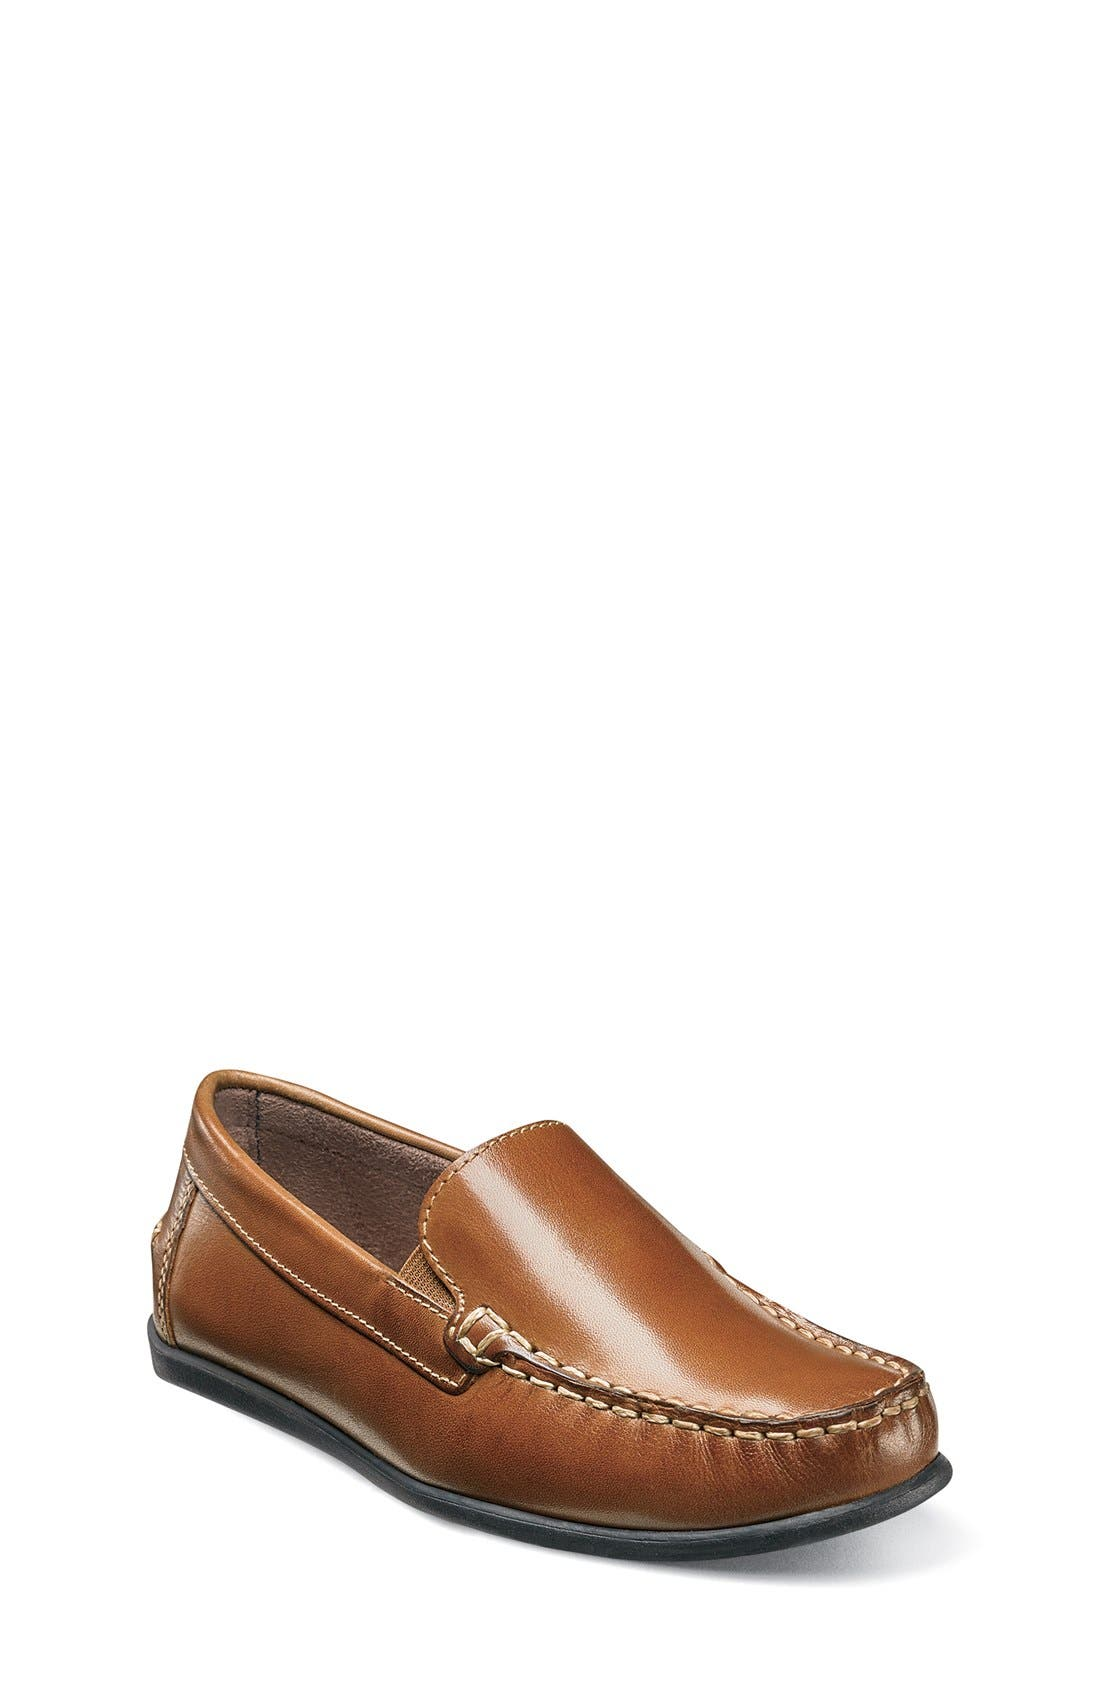 Florsheim 'Jasper - Venetian Jr.' Loafer (Toddler, Little Kid & Big Kid)